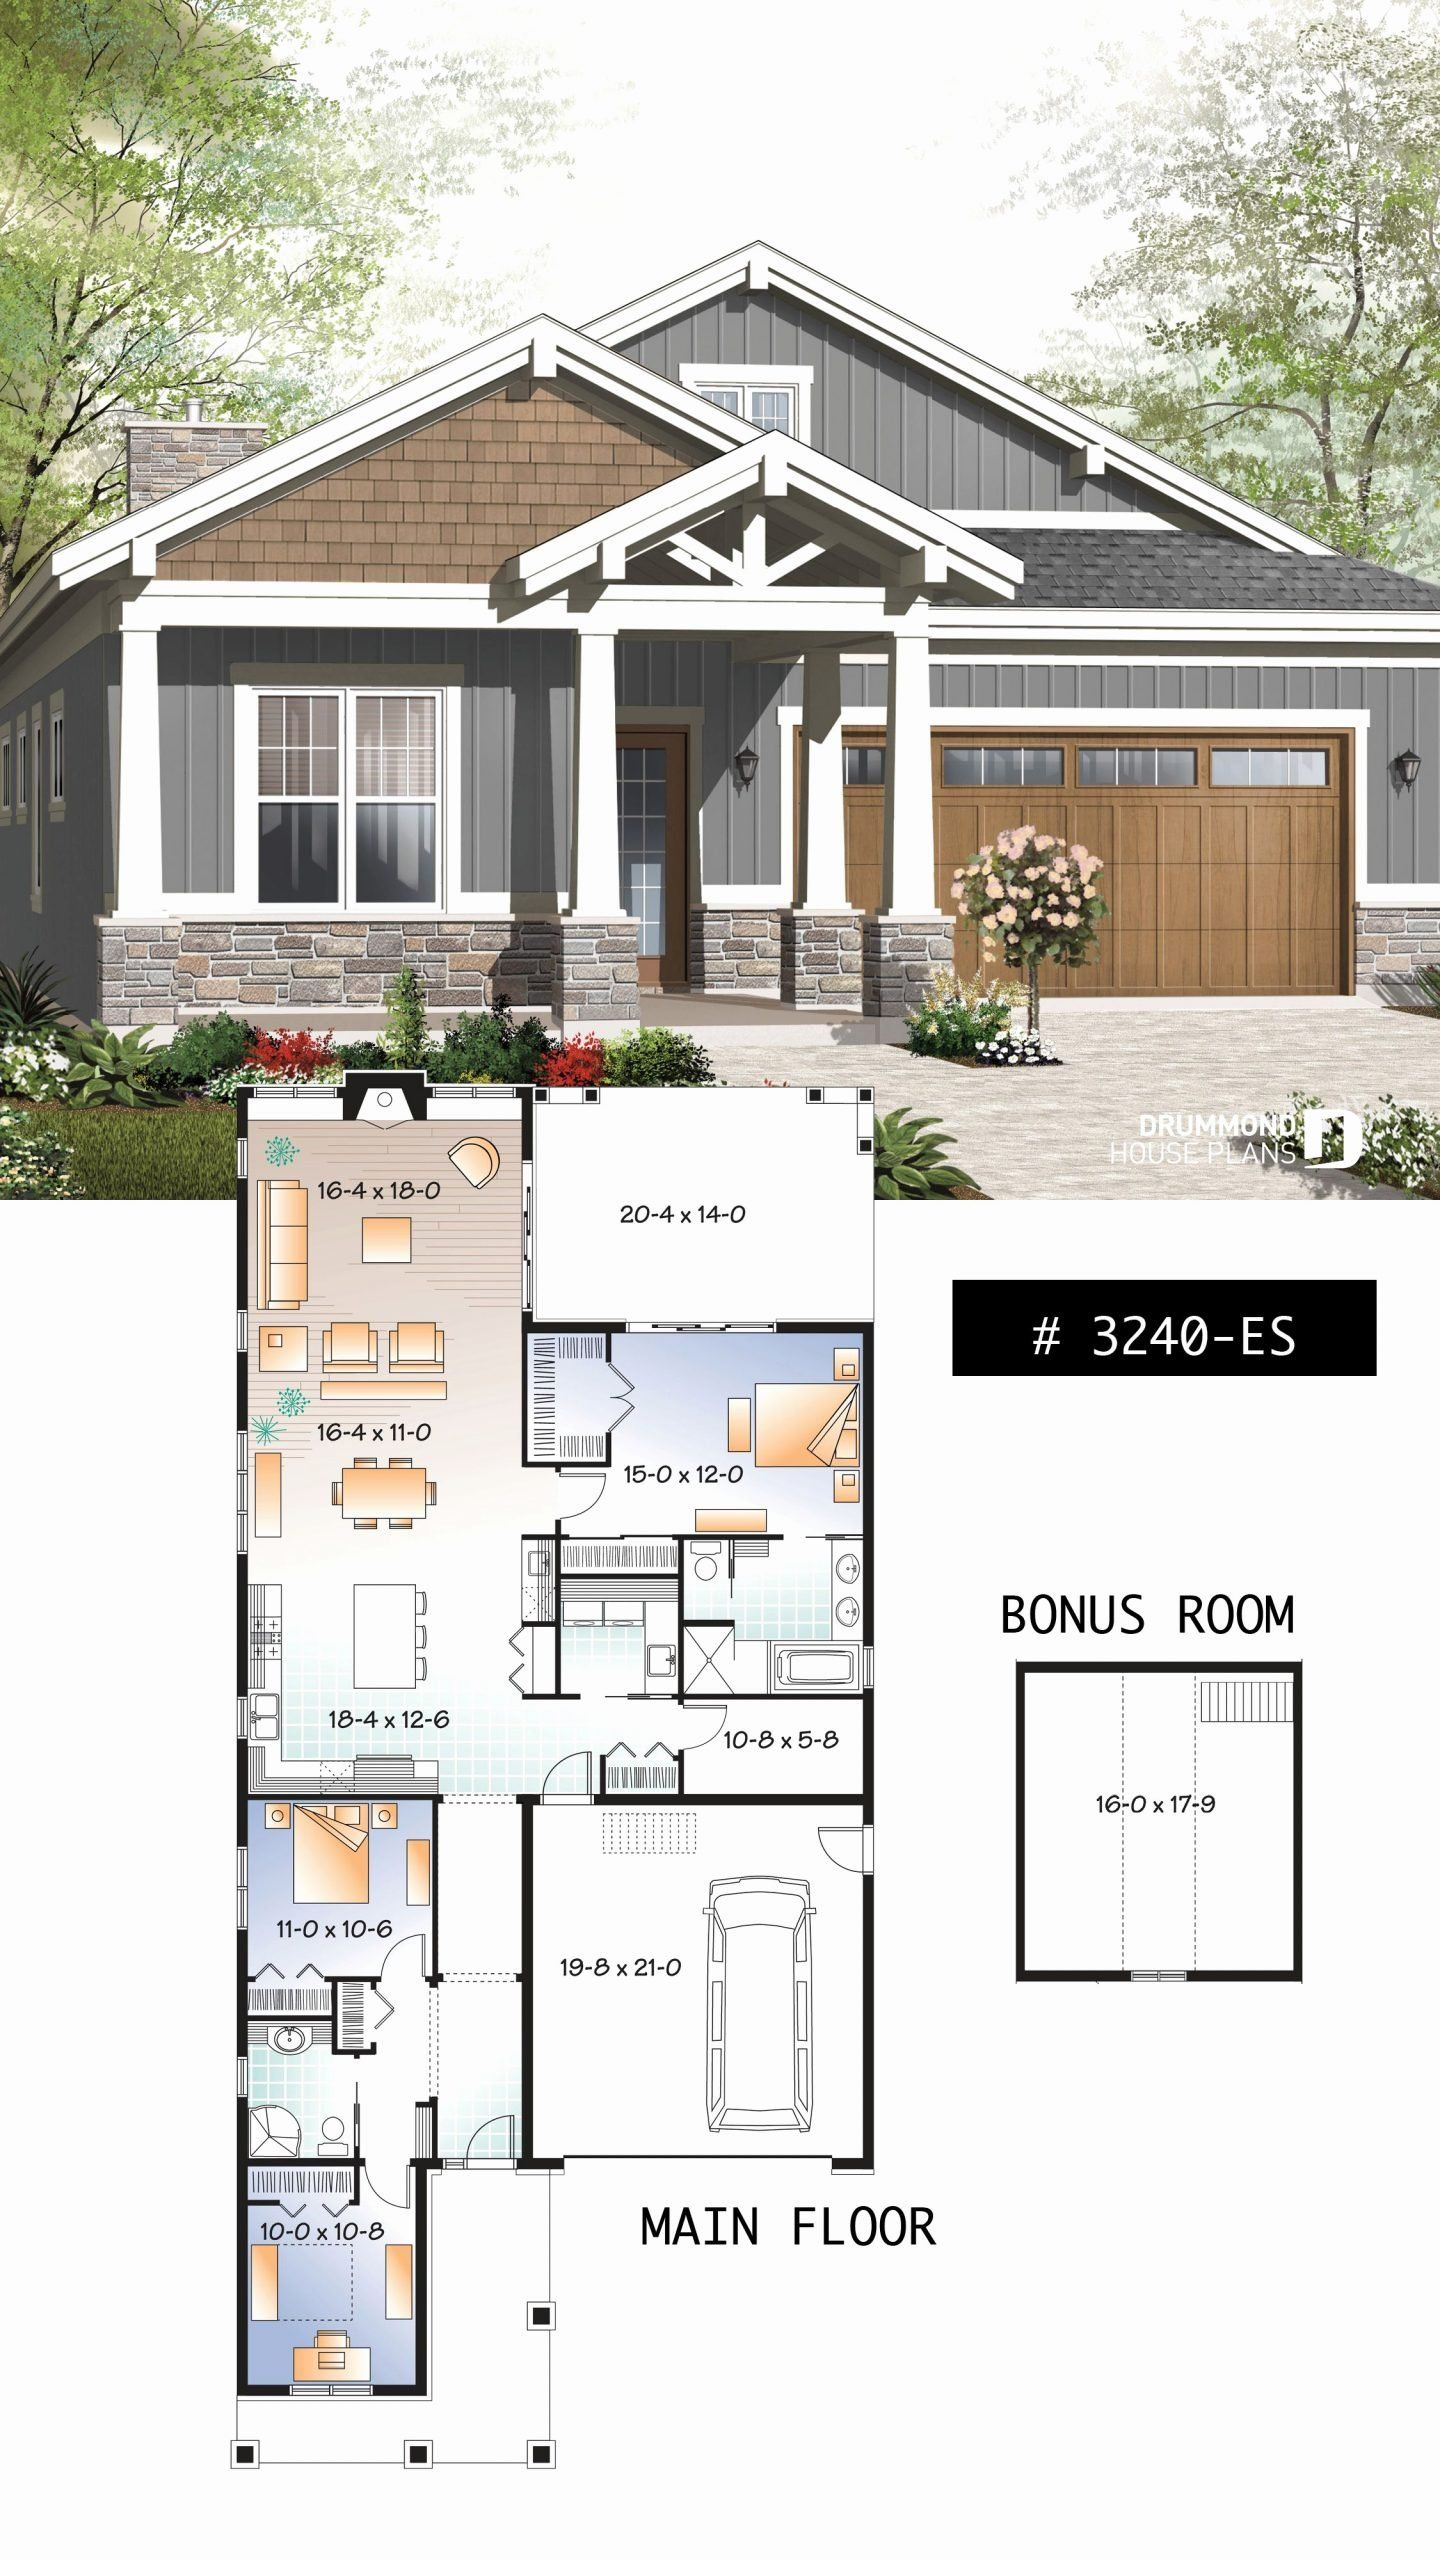 Craftman Style House Plans Fresh House Plan Northaven No 3240 Es In 2020 Craftsman Bungalow House Plans Bungalow Floor Plans Craftsman House Plans